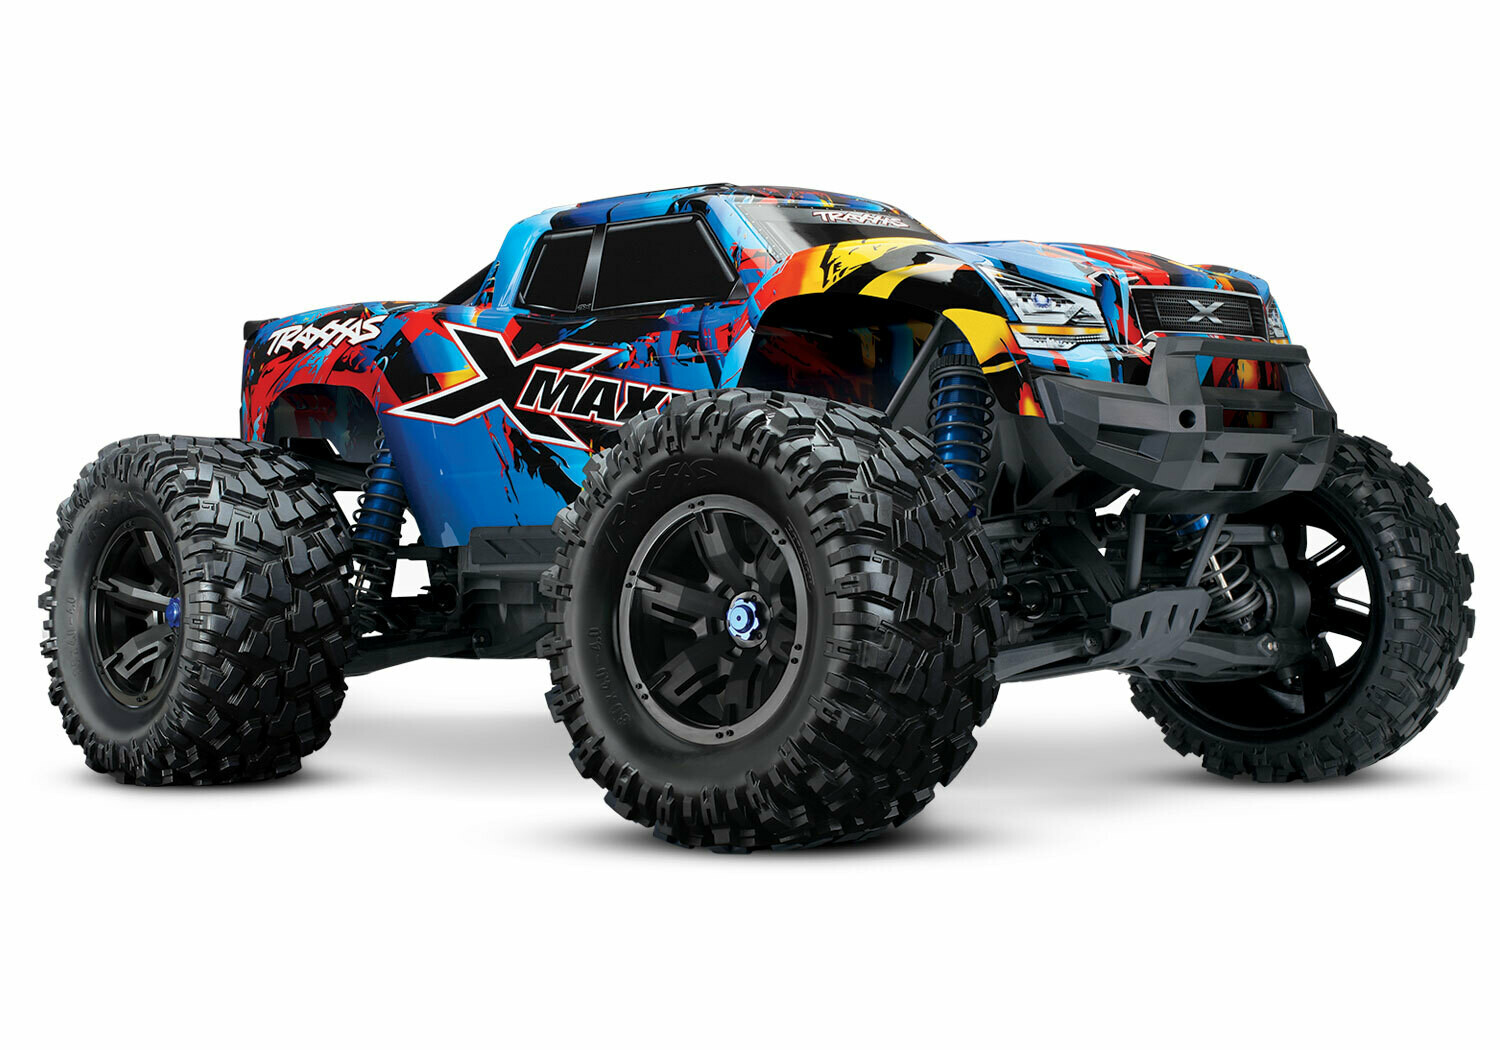 Traxxas X-Maxx 8S 4WD COMBO DEAL 1 1/7 (VXL-8S/TQi/2x4S 6700mAh/Live iD Charger)